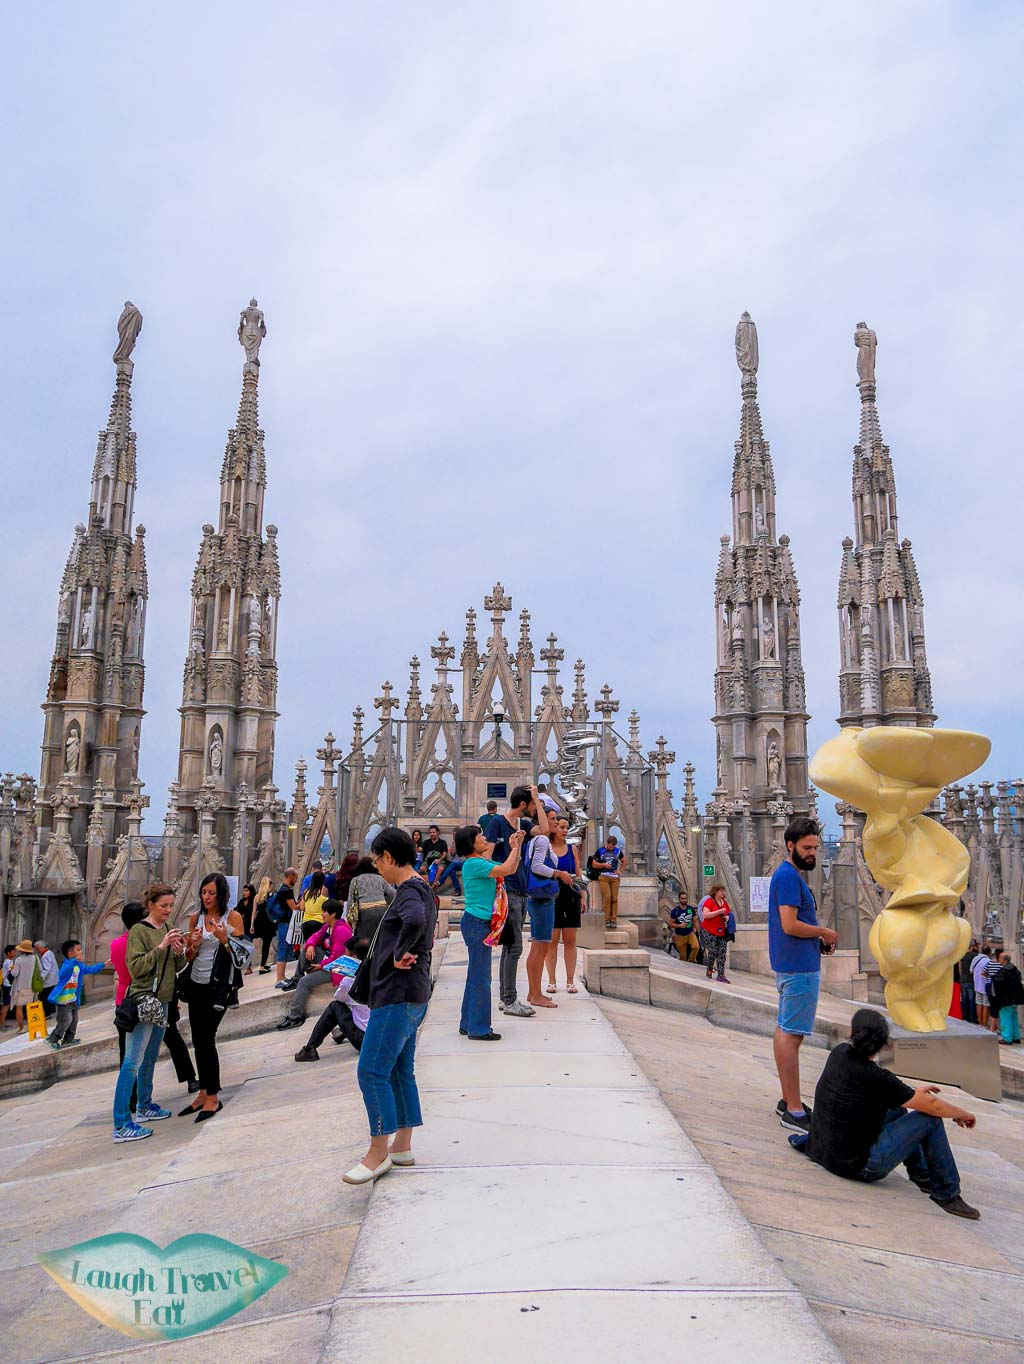 on top of the DUomo roof, Duomo di Milano, Milan, Italy - Laugh Travel Eat